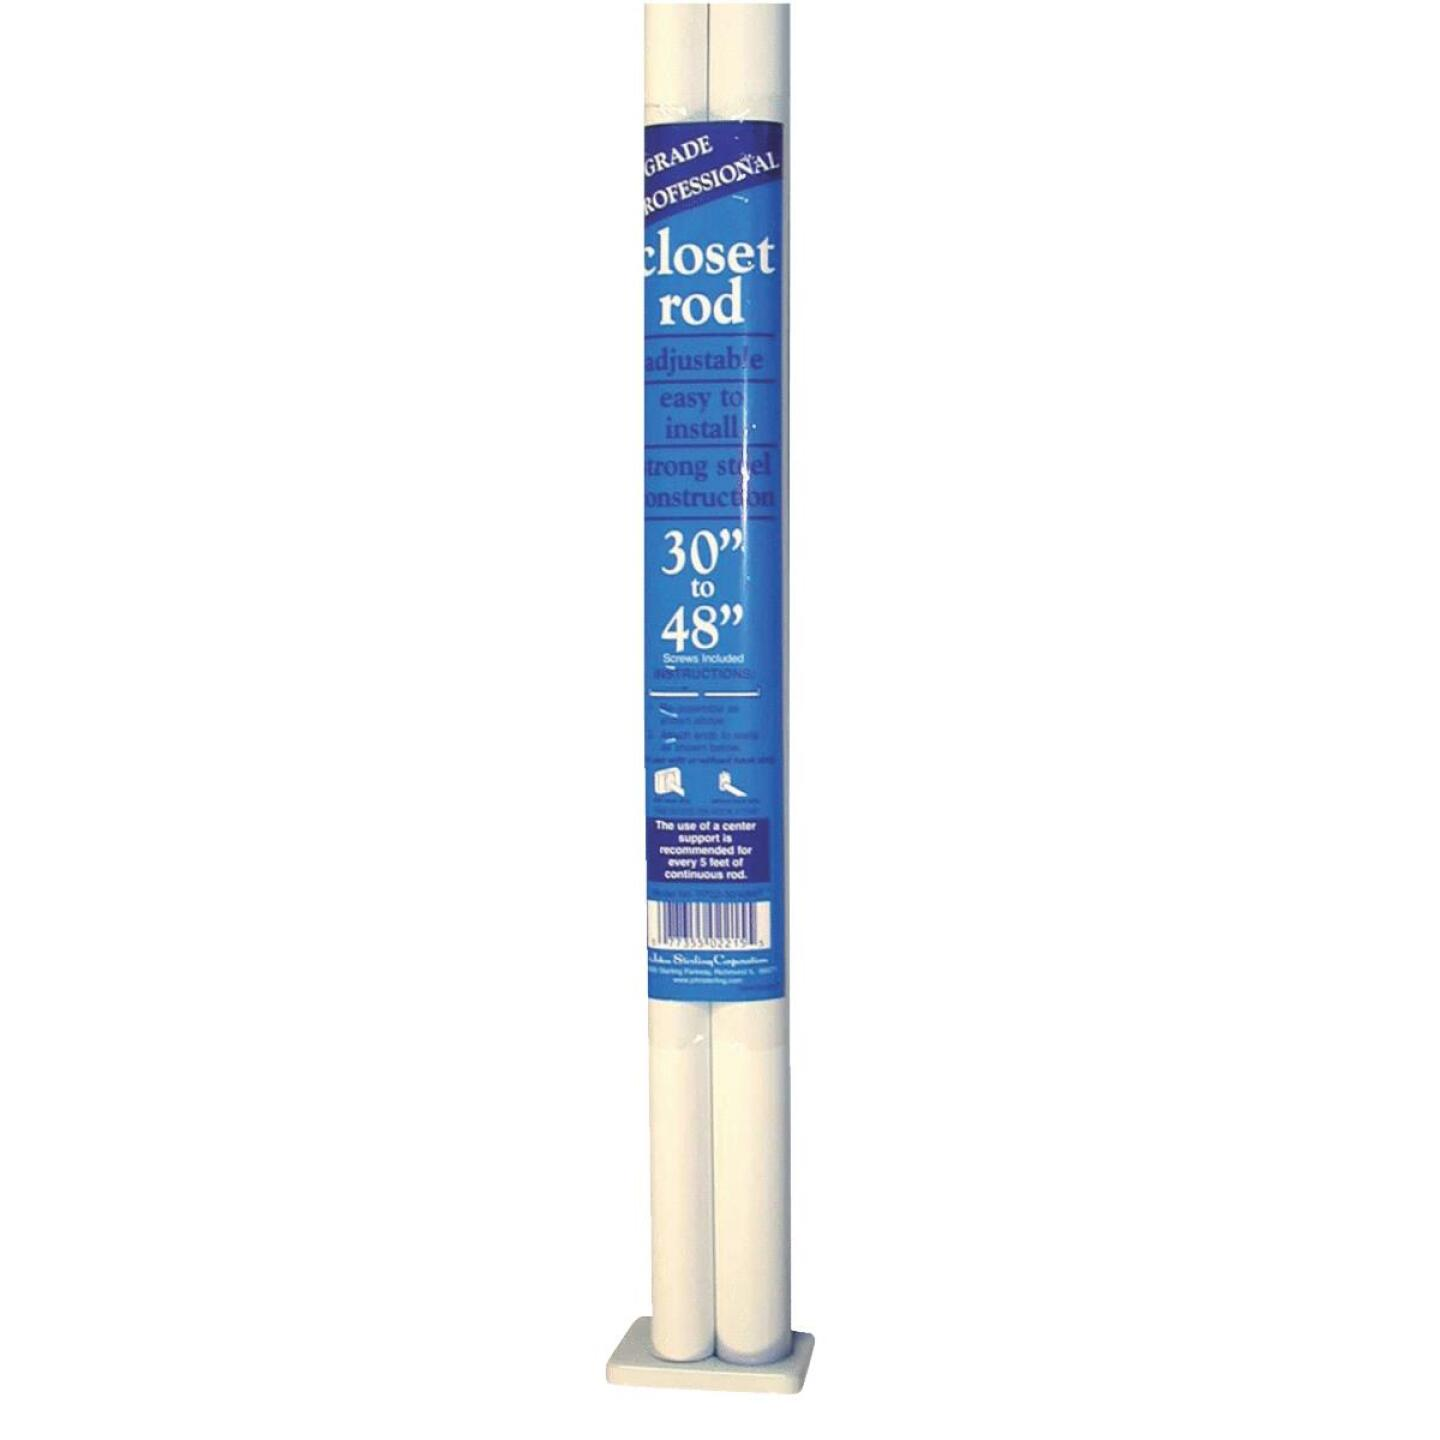 John Sterling Closet-Pro 30 In. to 48 In. x 1 In. Adjustable Closet Rod, White Image 1